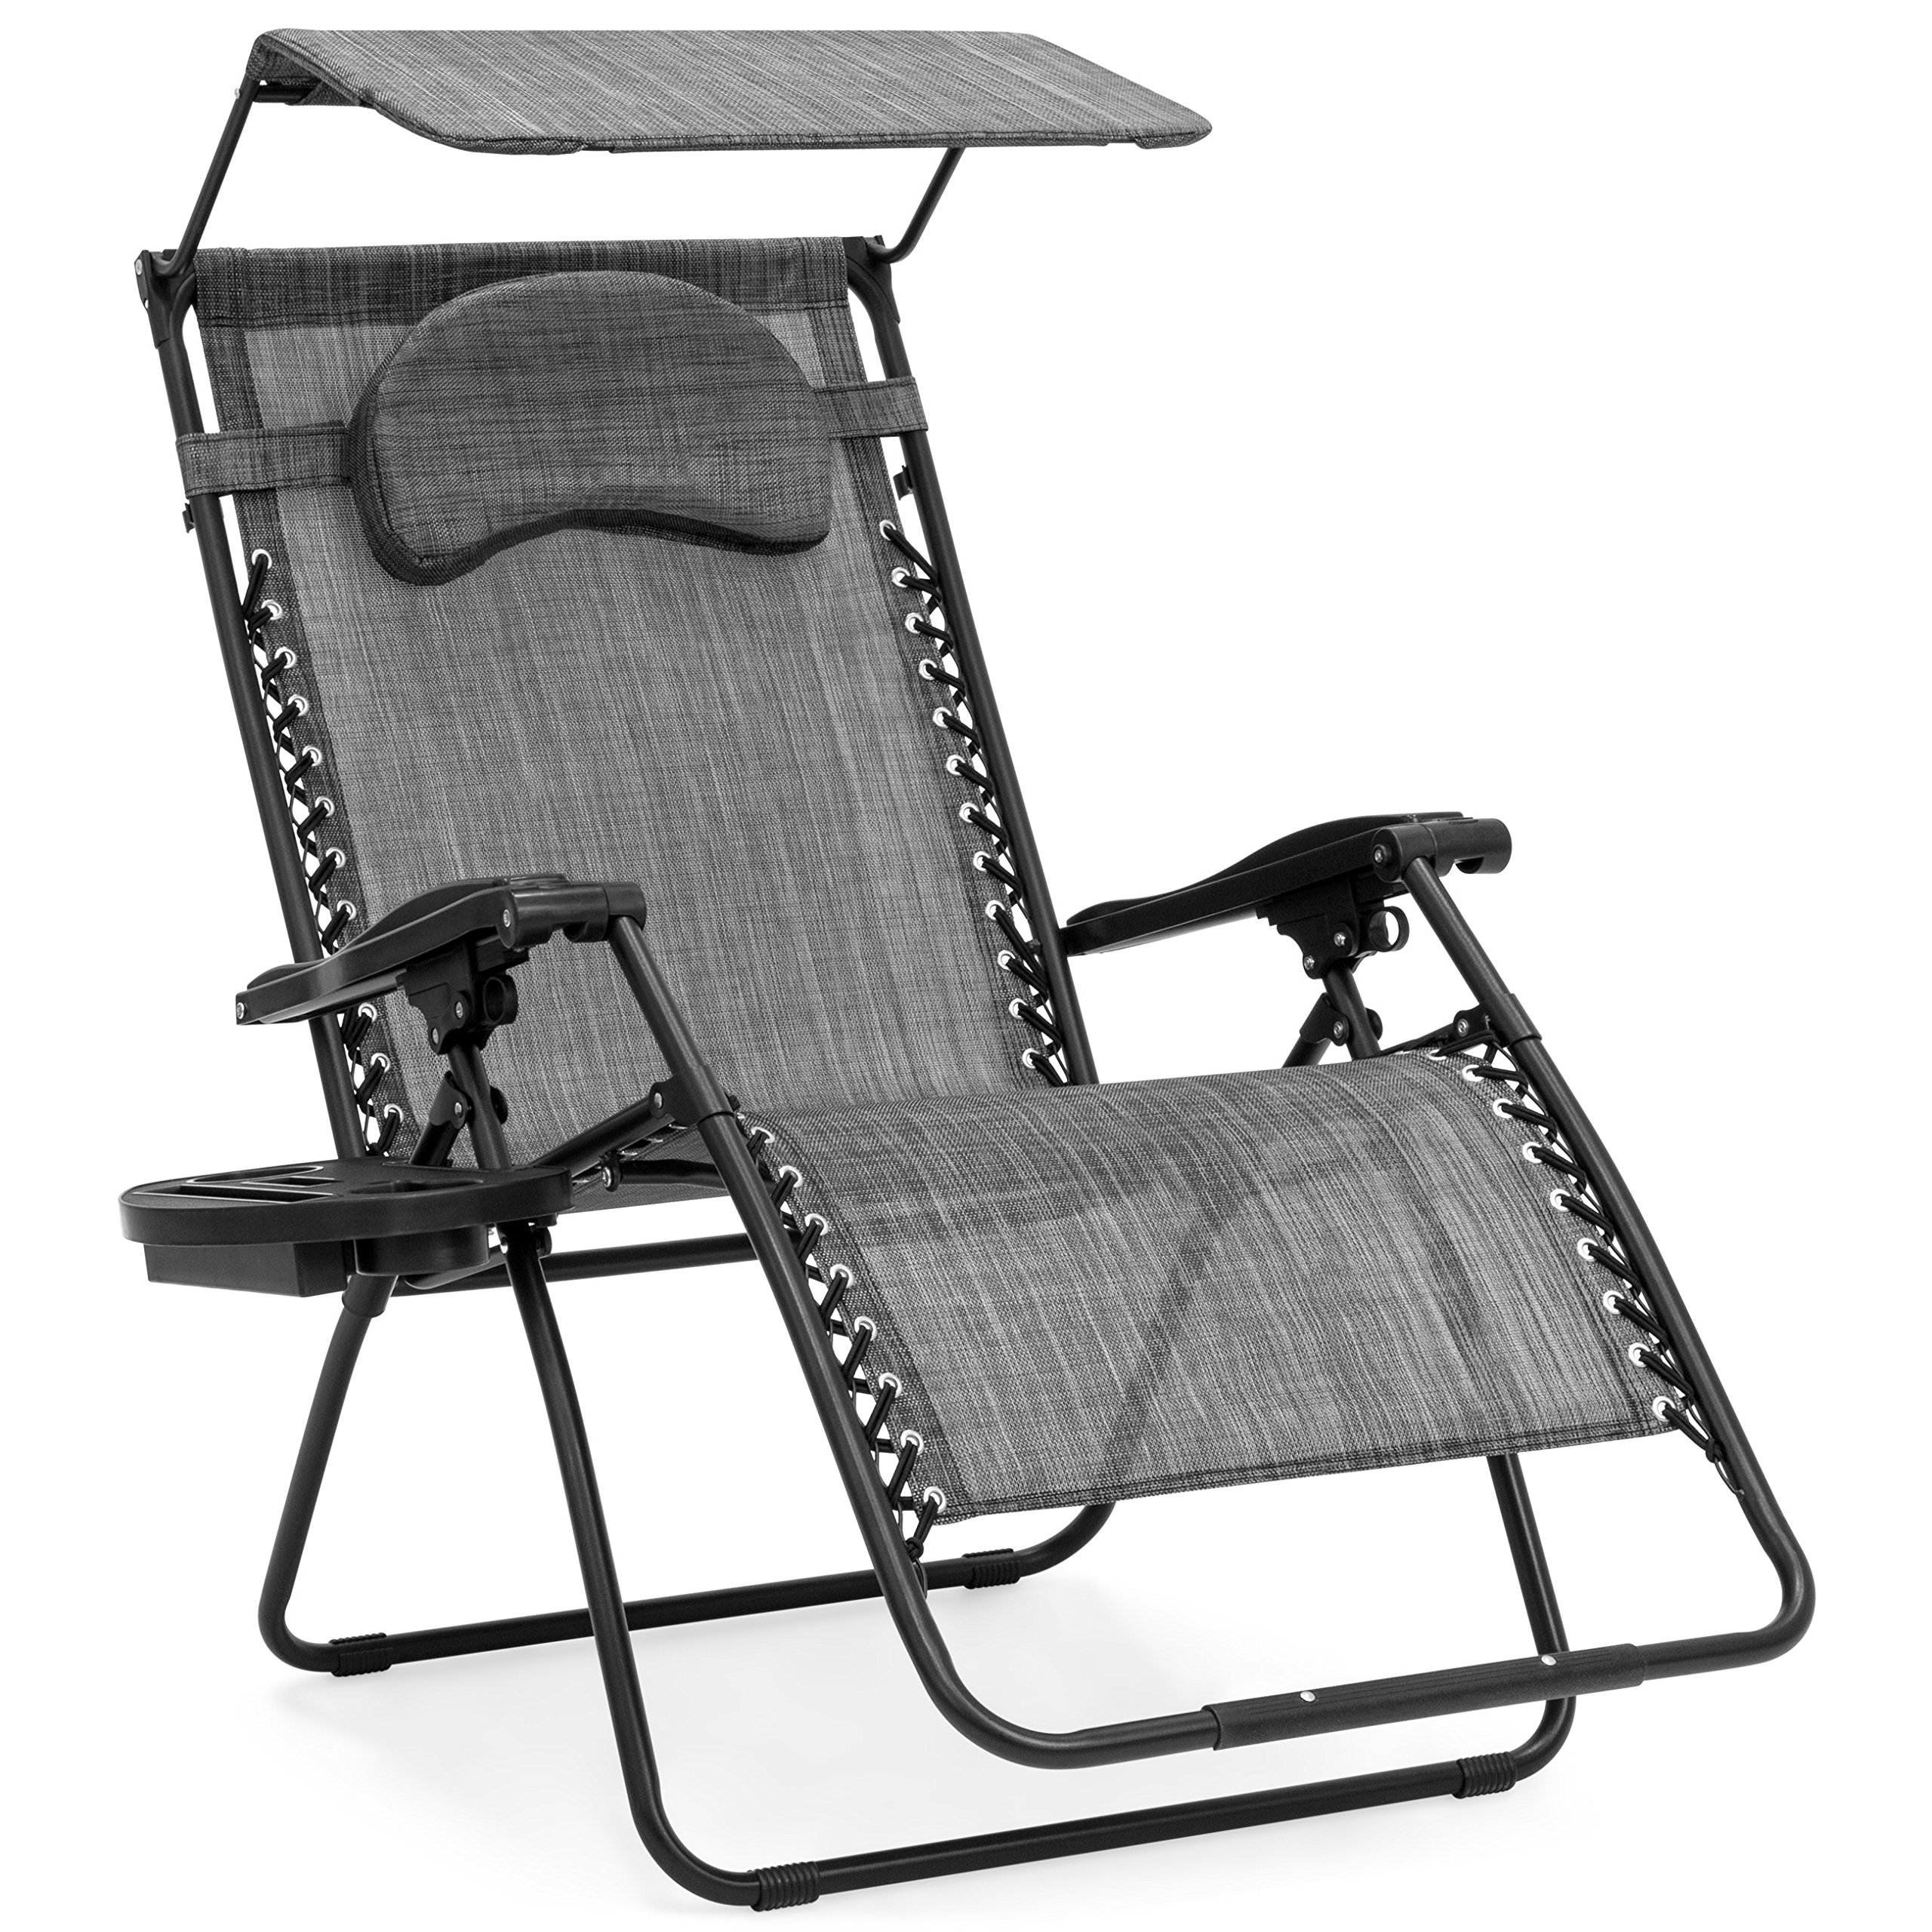 Best Choice Products Oversized Steel Mesh Zero Gravity Reclining Lounge Patio Chair with Folding Canopy Shade and Cup Holder, Gray by Best Choice Products